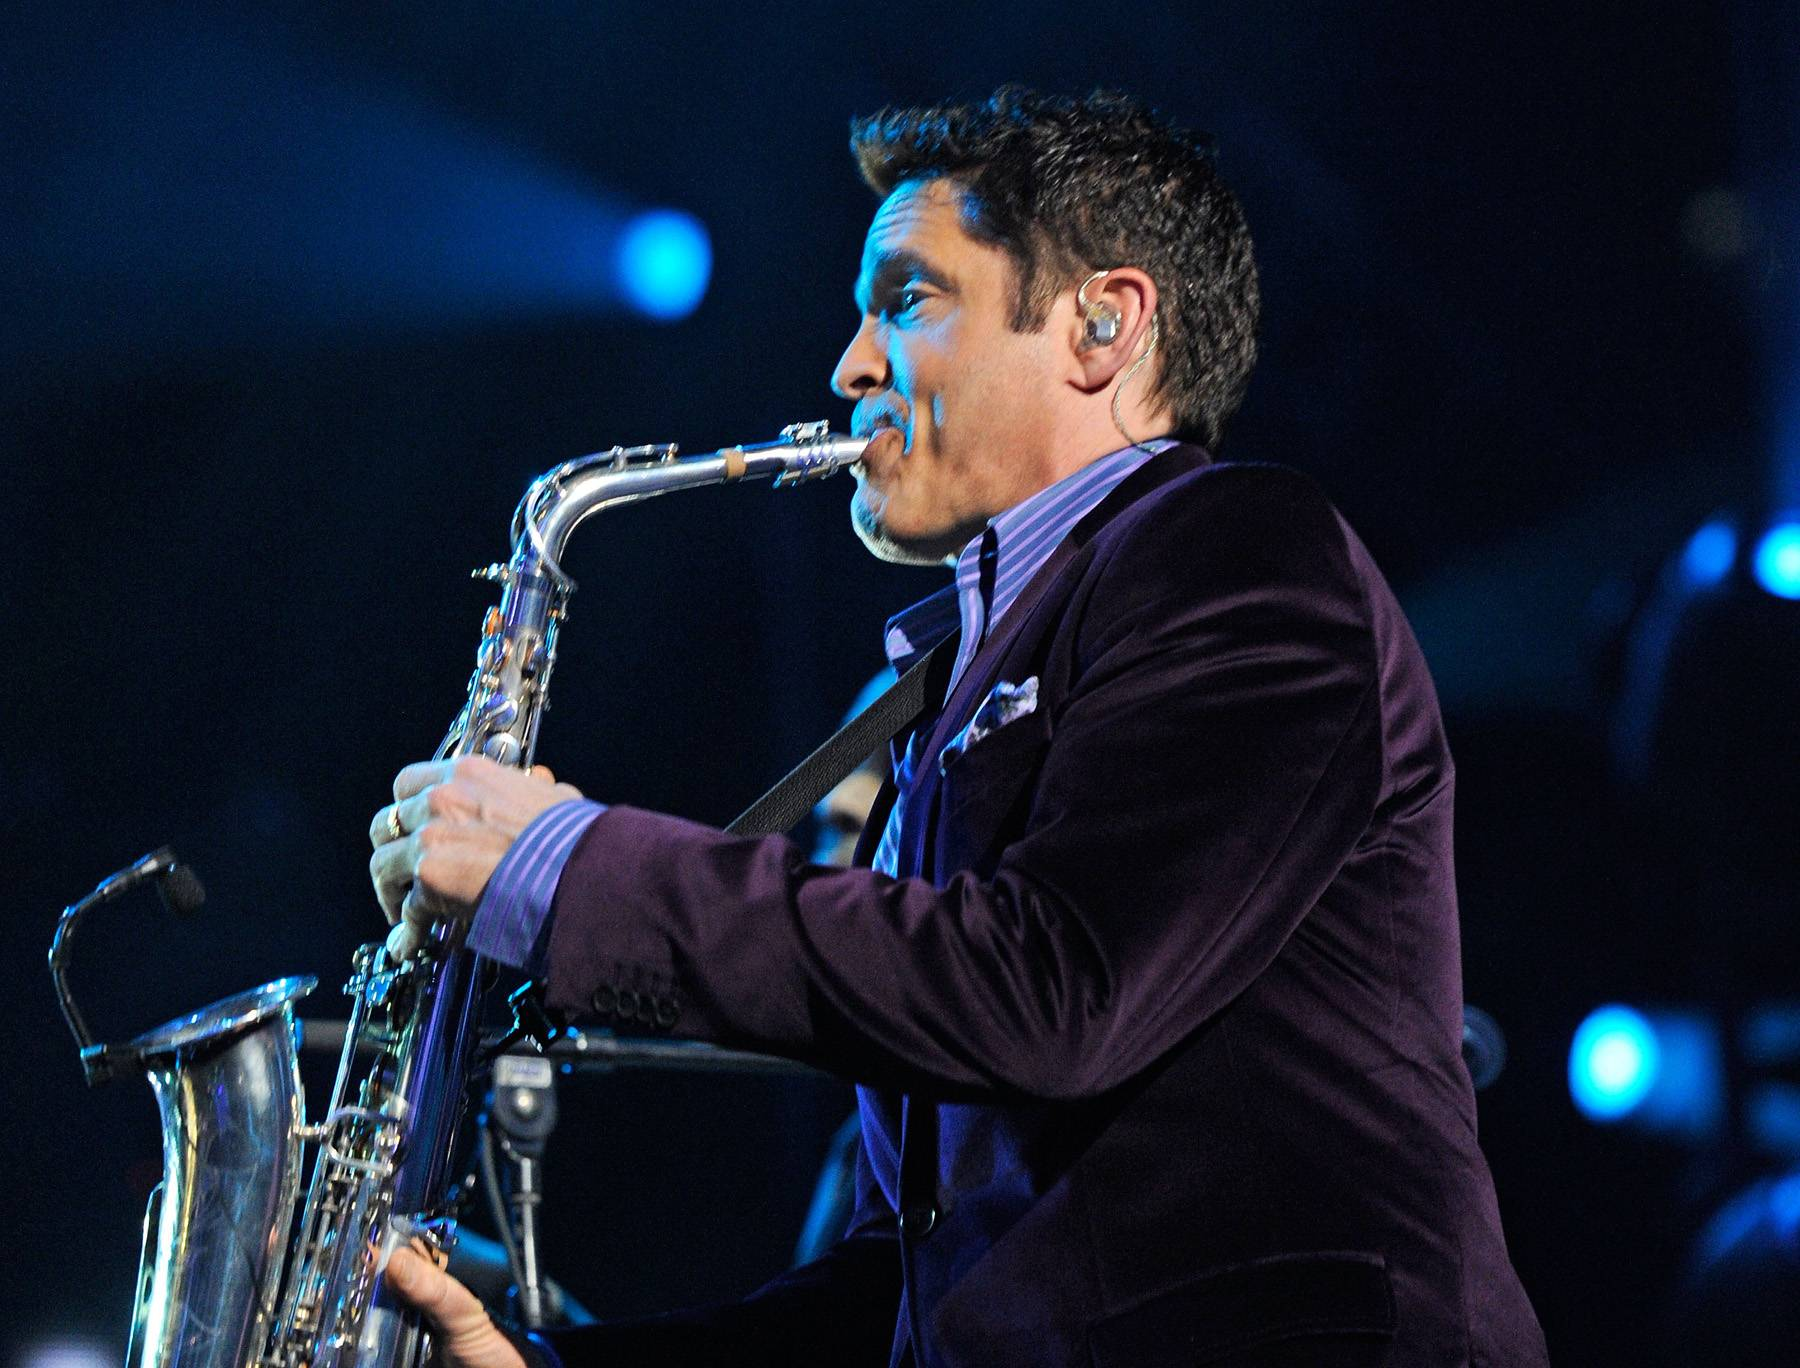 """Best Contemporary Jazz Performance:Dave Koz ? """"Got To Get You Into My Life"""" - Regarded as a premiere smooth jazz saxophonist, Dave Koz teamed up with the legendary Earth, Wind & Fire for this horn-heavy single off his album Dave Koz & Friends ? Summer Horns.   (Photo: Ethan Miller/Getty Images for Keep Memory Alive)"""